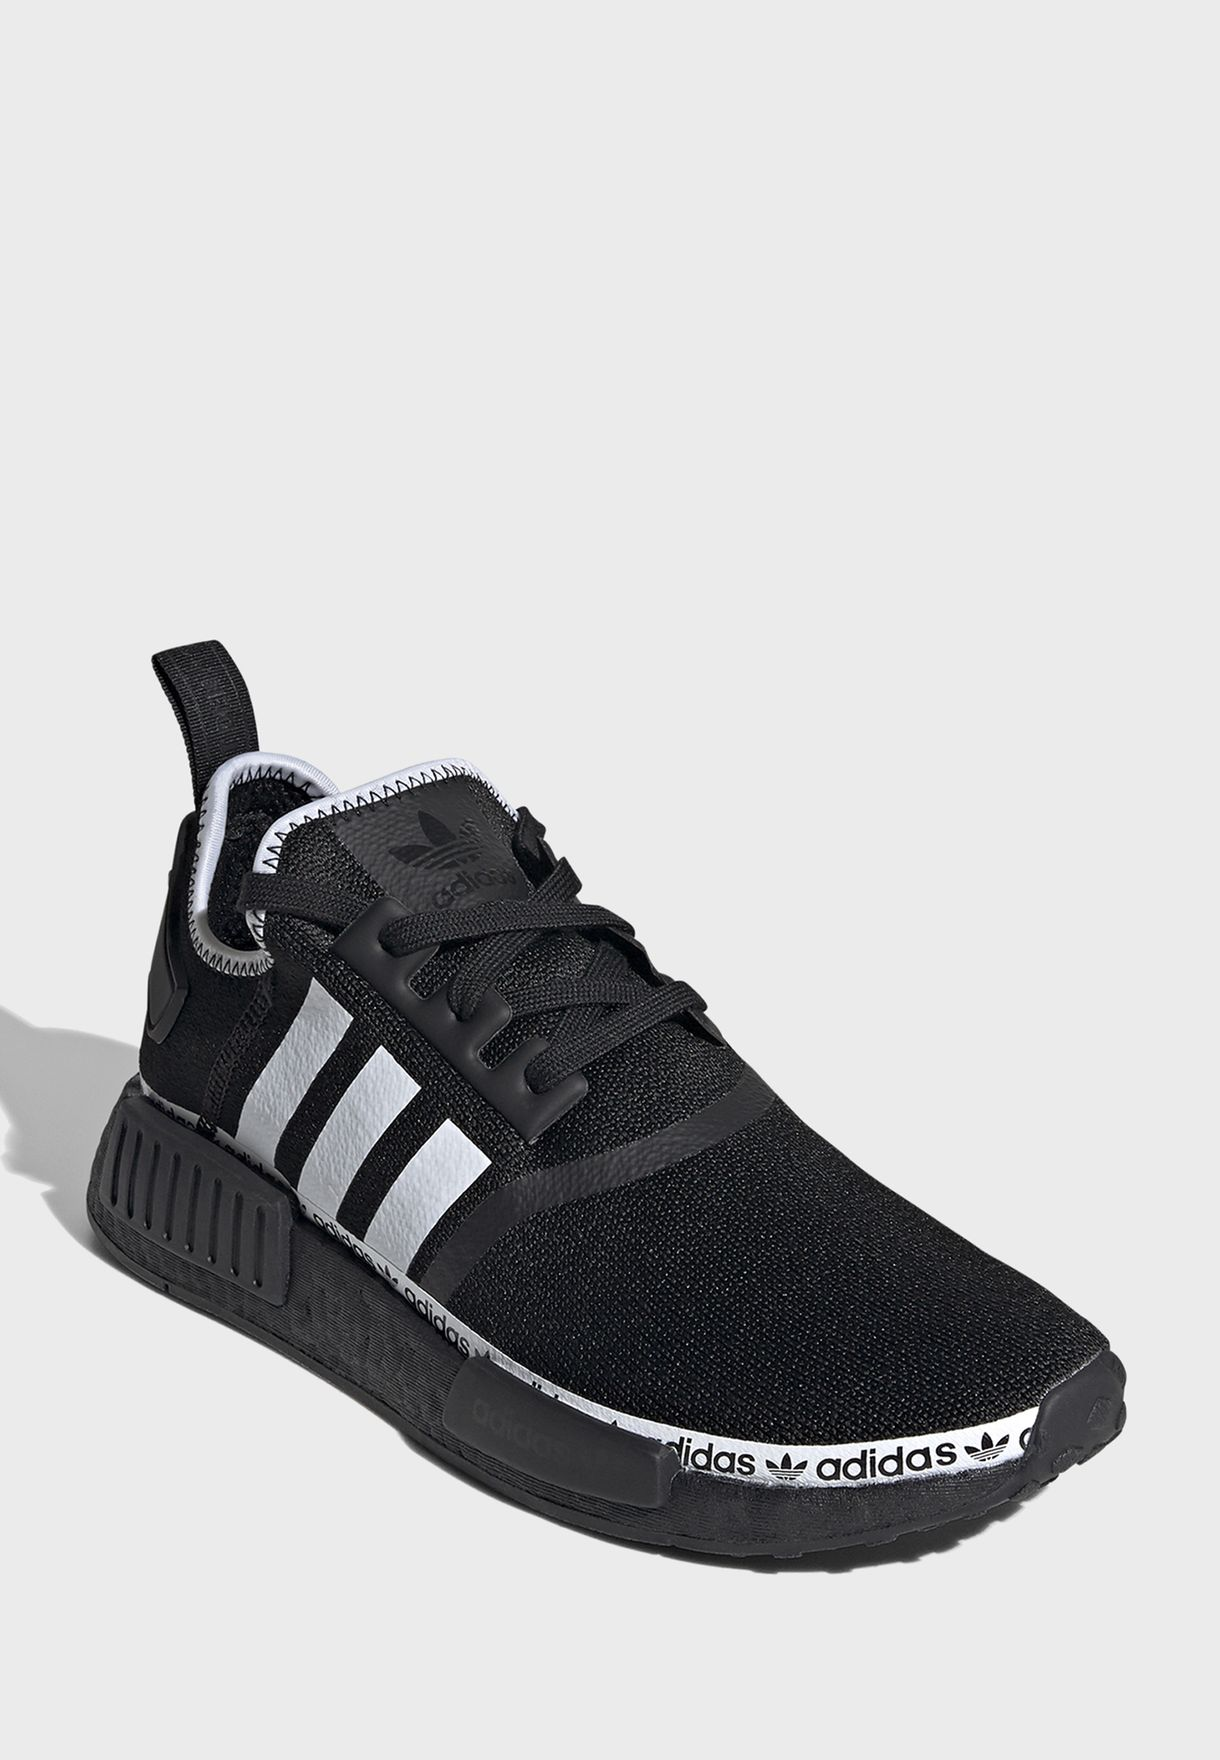 NMD_R1 Casual Men's Sneakers Shoes